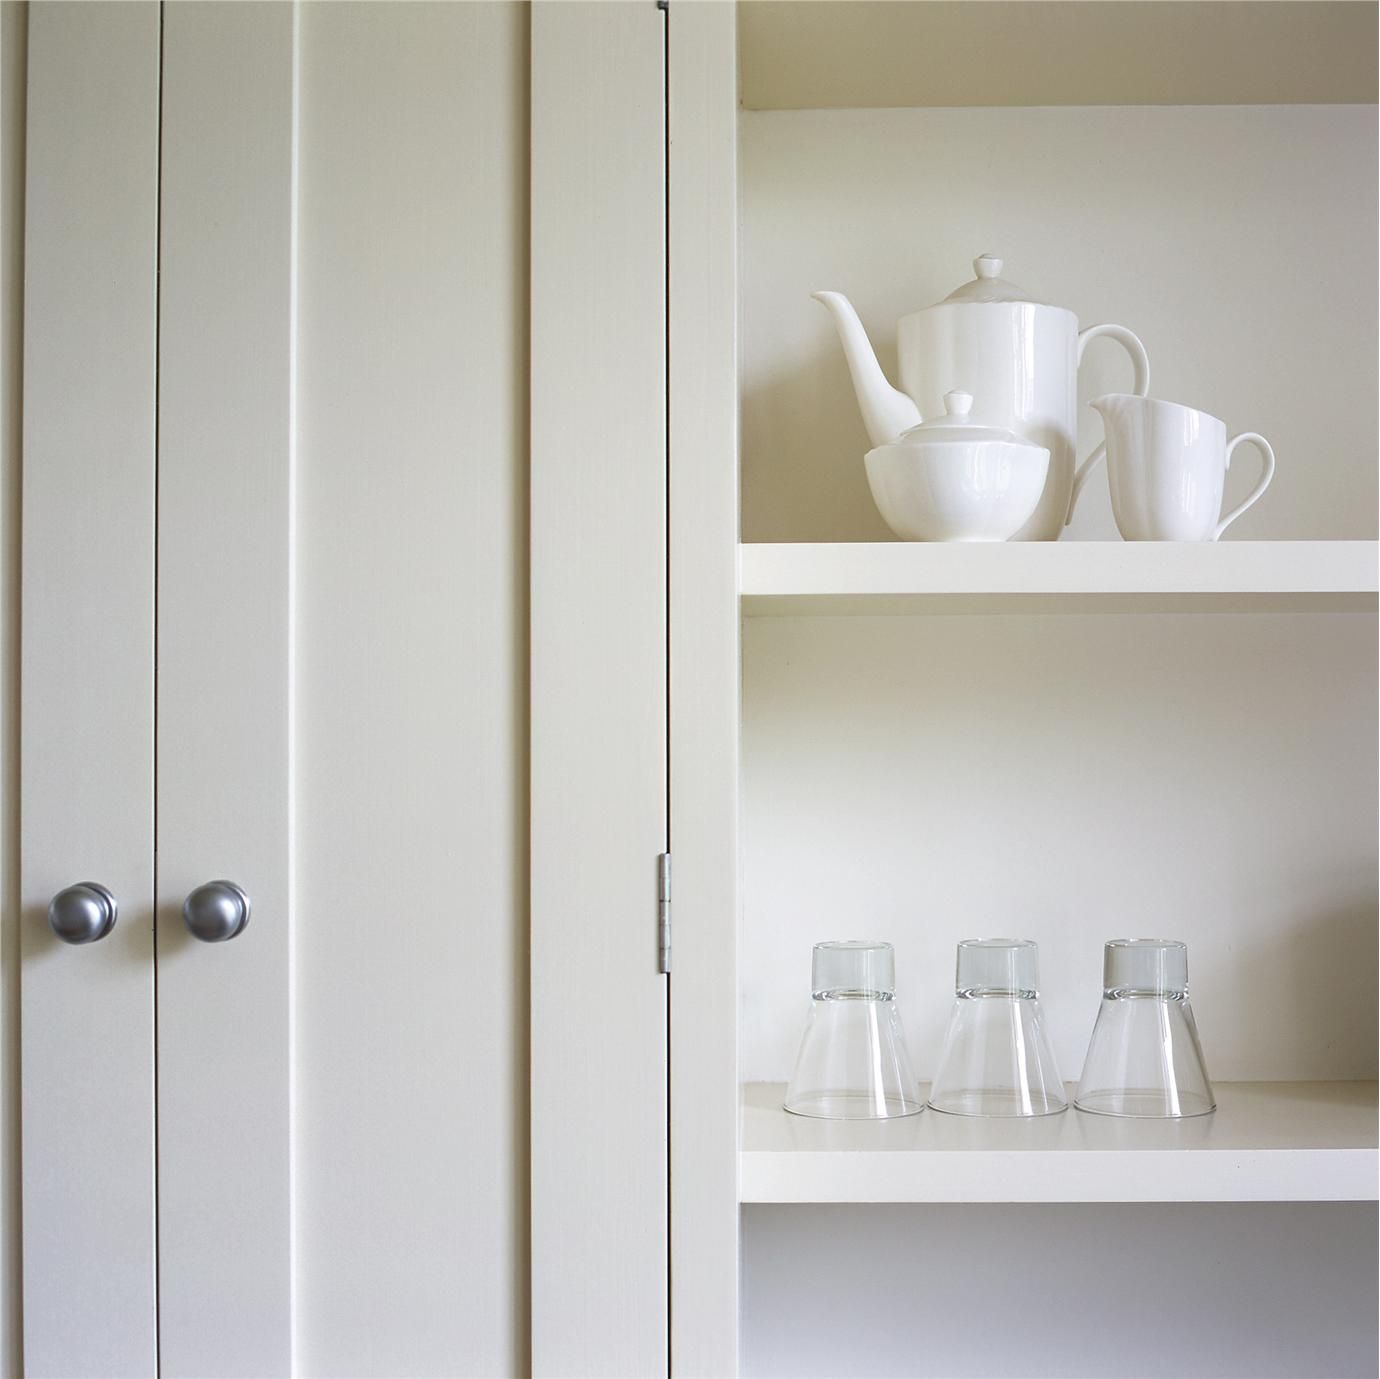 Best Cabinet Paint Color Clunch From Farrow Ball Farrow 400 x 300